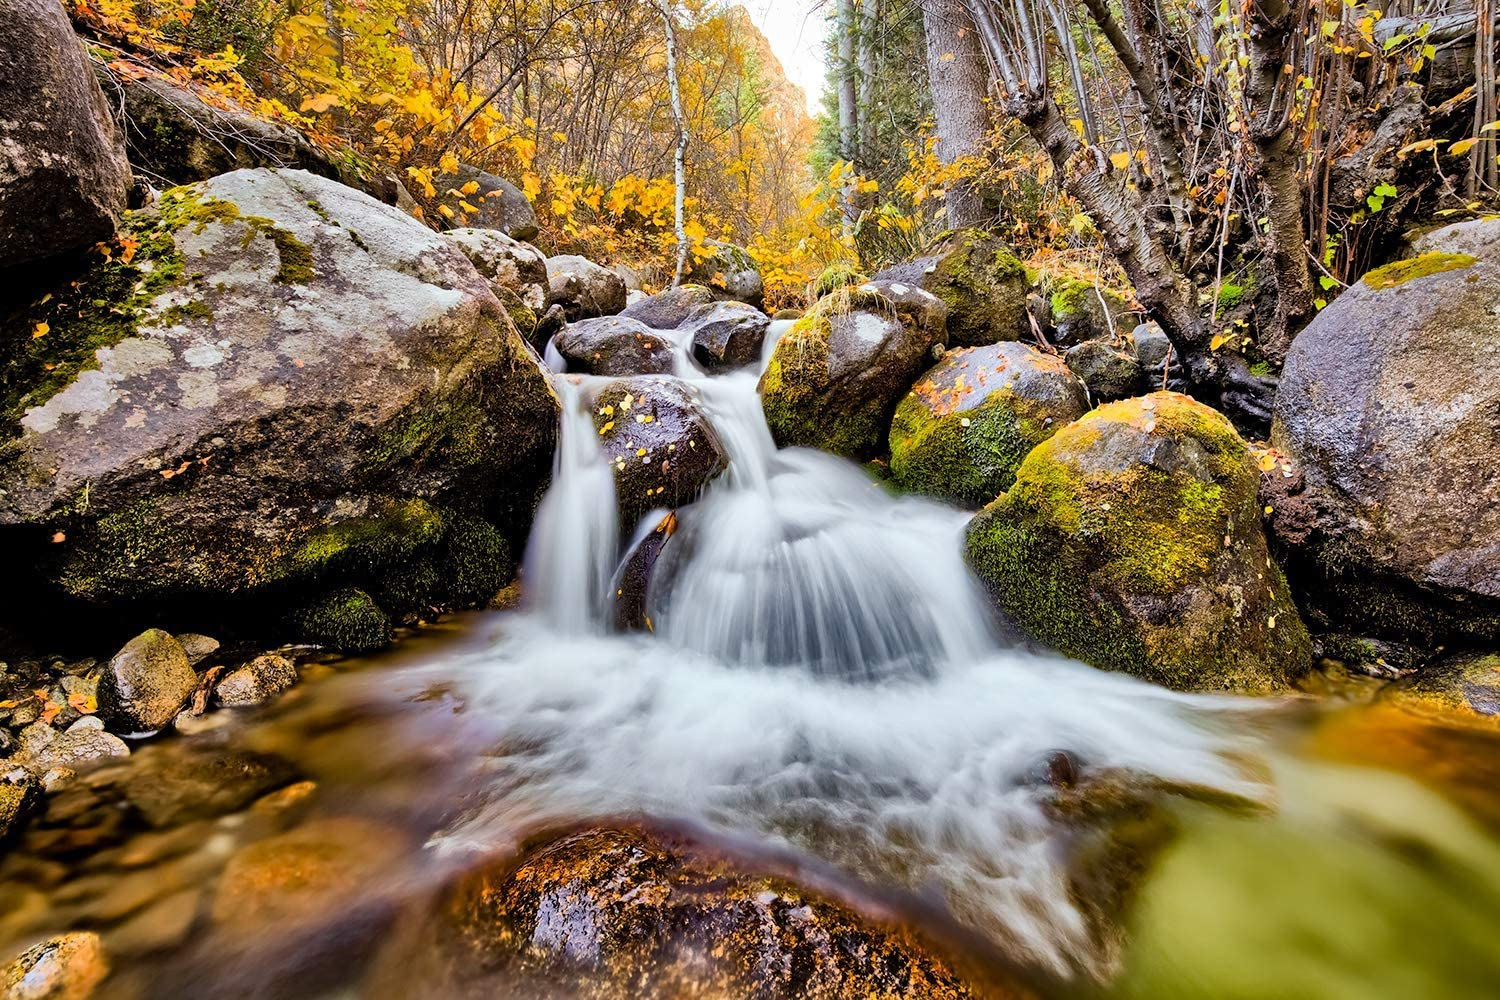 Utah Nature Photography 24x36 Inch Nature Art Print Bell's Canyon River in The Fall Unframed Print  Professionally Produced Wall Poster Direct from The Artist